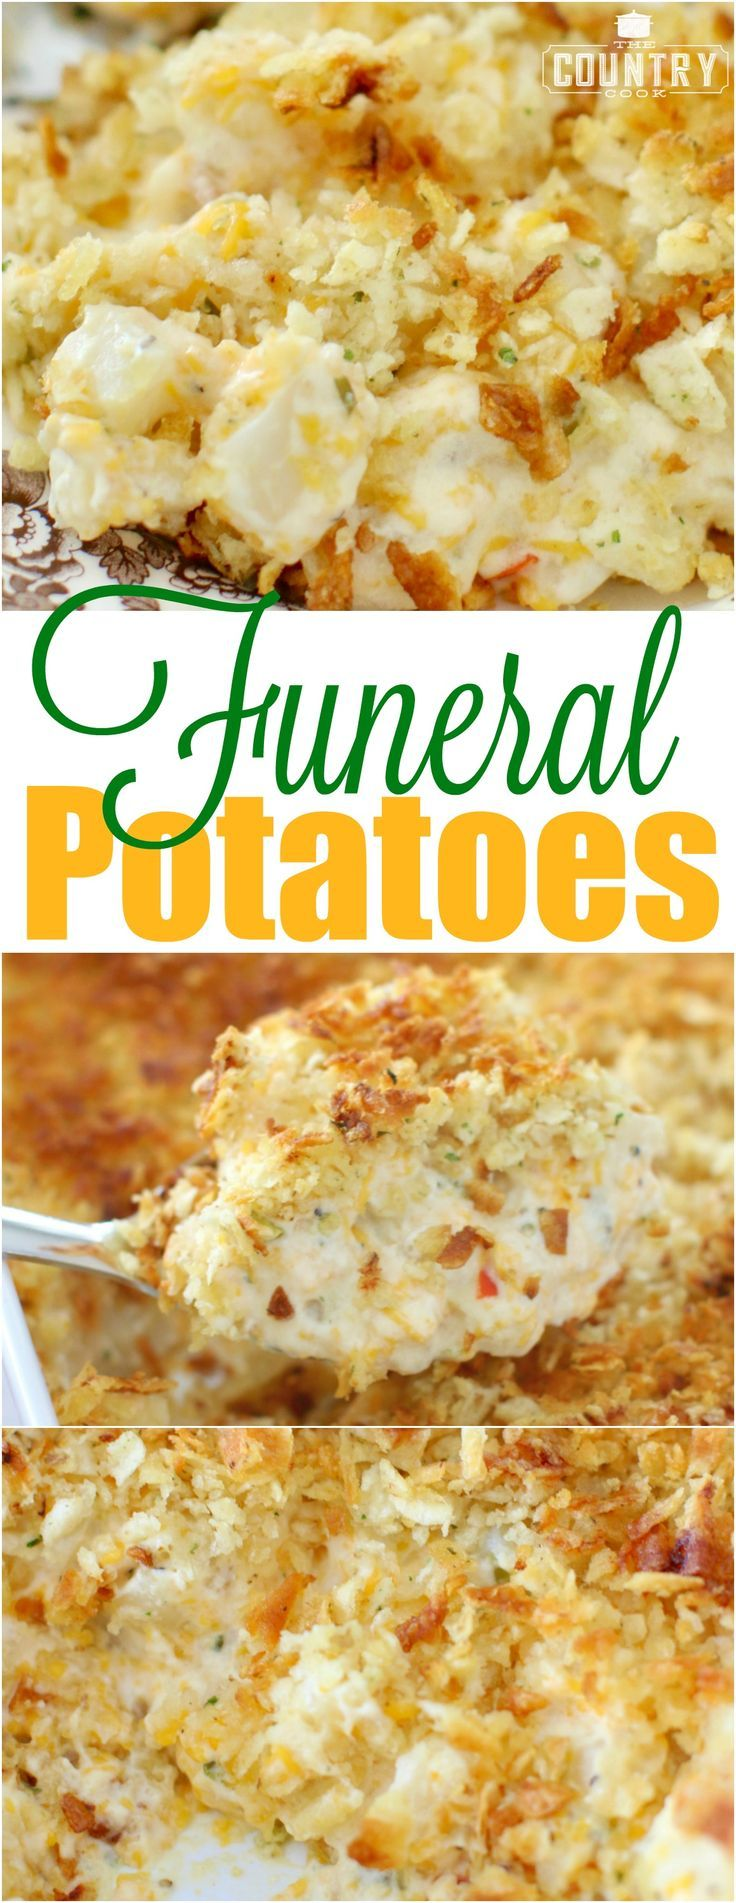 cool Funeral Potatoes recipe from The Country Cook...by http://dezdemooncooking4u.gdn